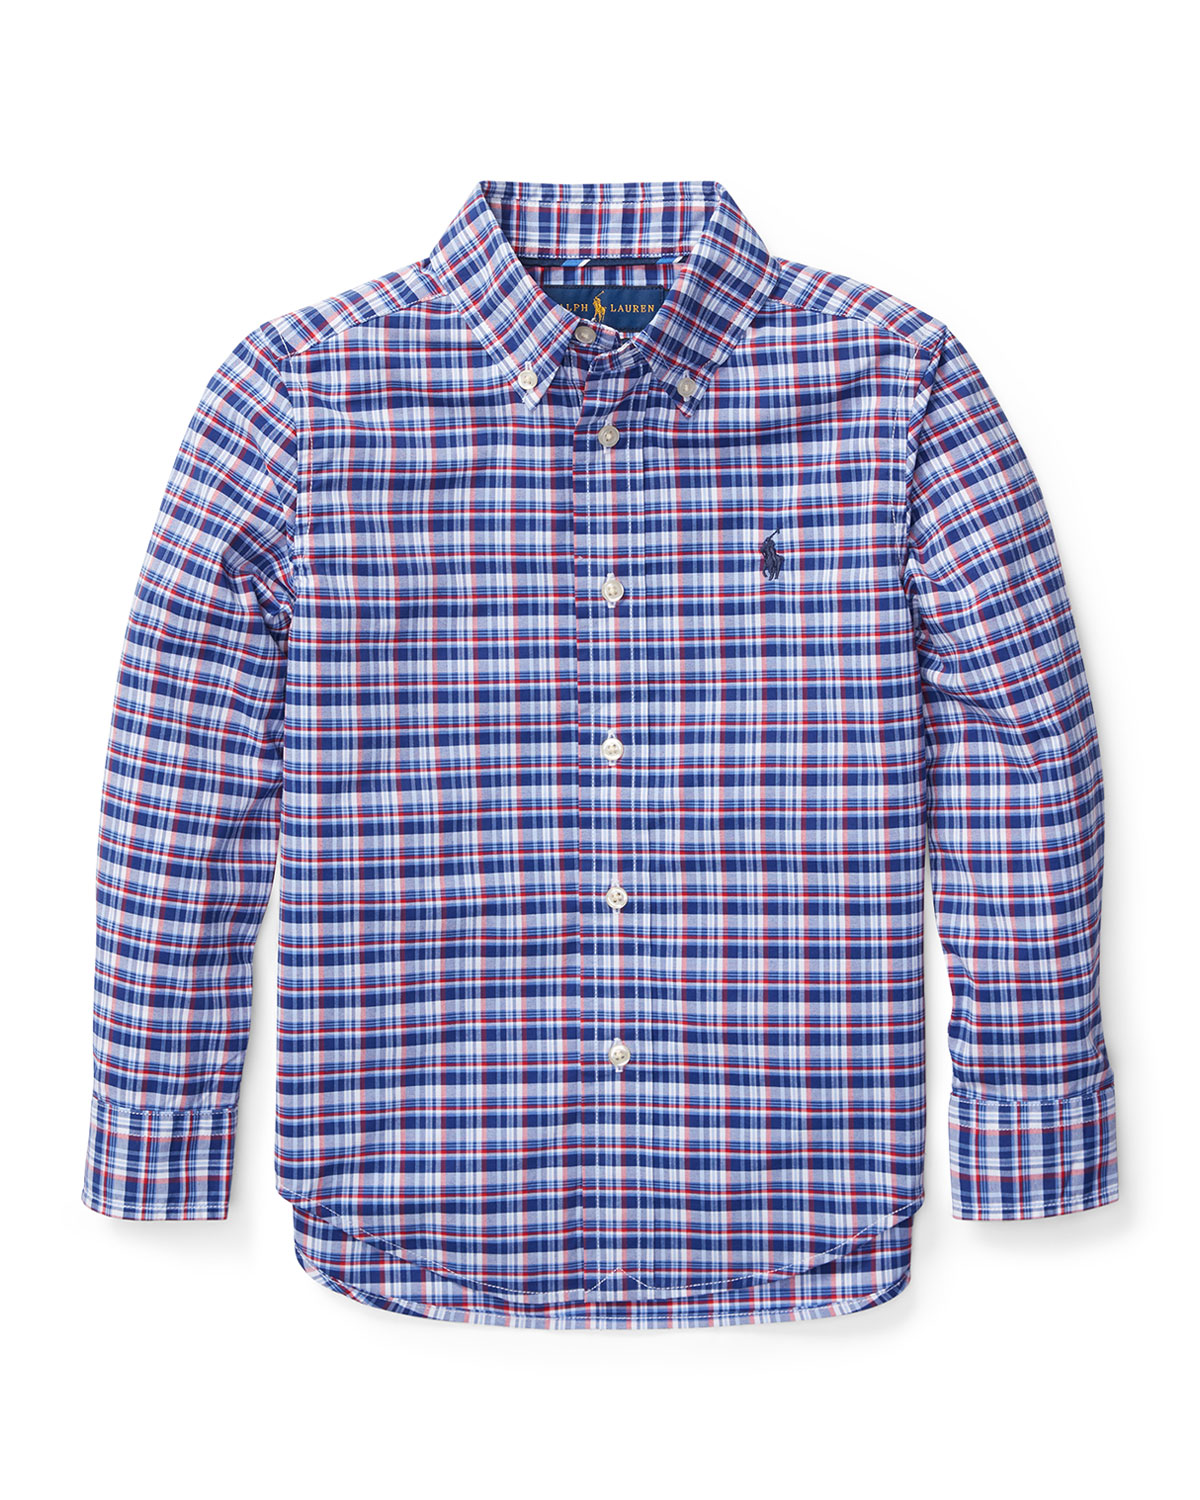 Long-Sleeve Plaid Button-Down Shirt, Size 5-7